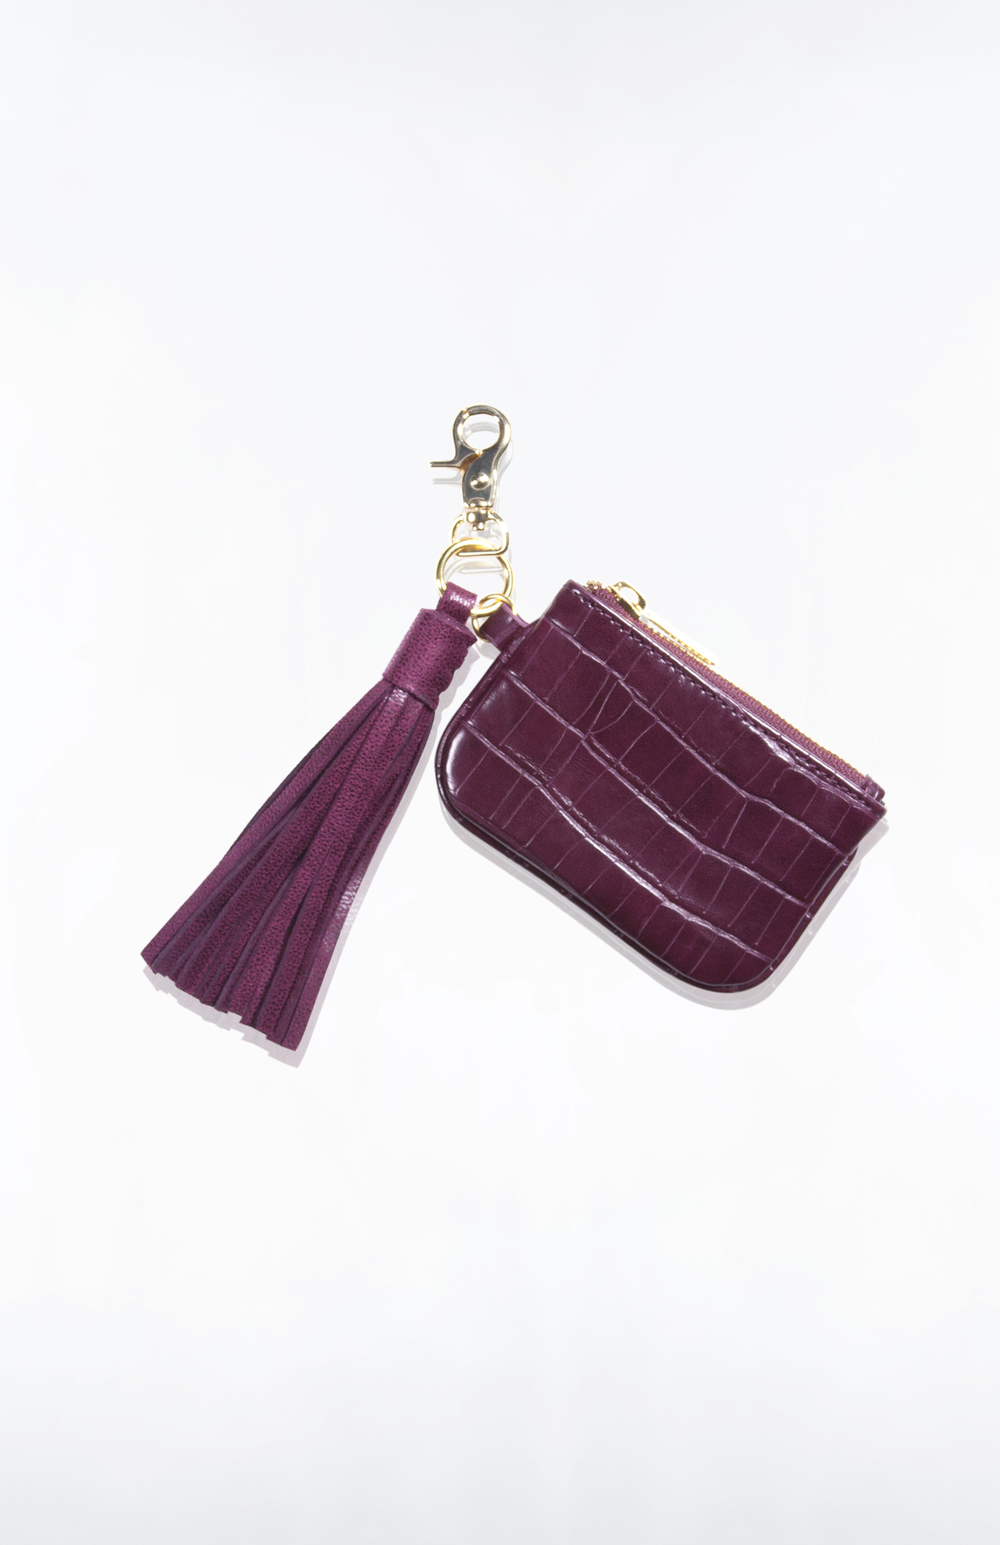 Card Case + Tassel Keychain